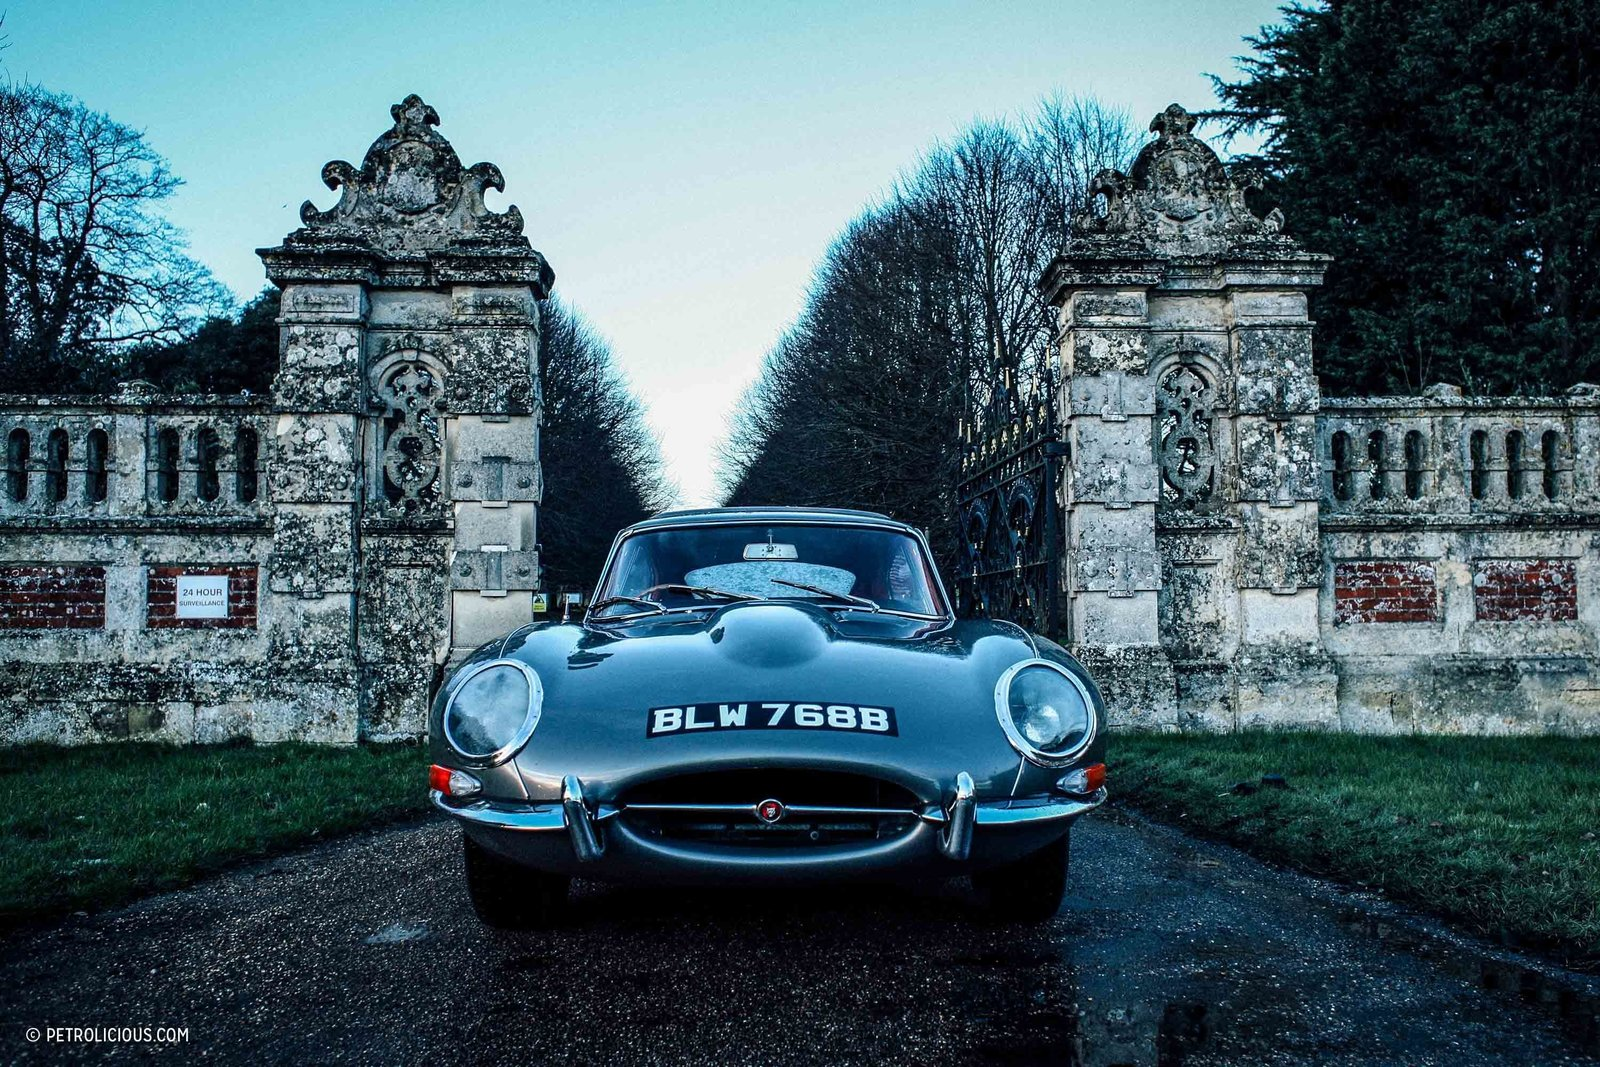 Photo 5 of 7 in I Drove 400 Miles In A Jaguar E-Type  And Lived To Tell The Tale